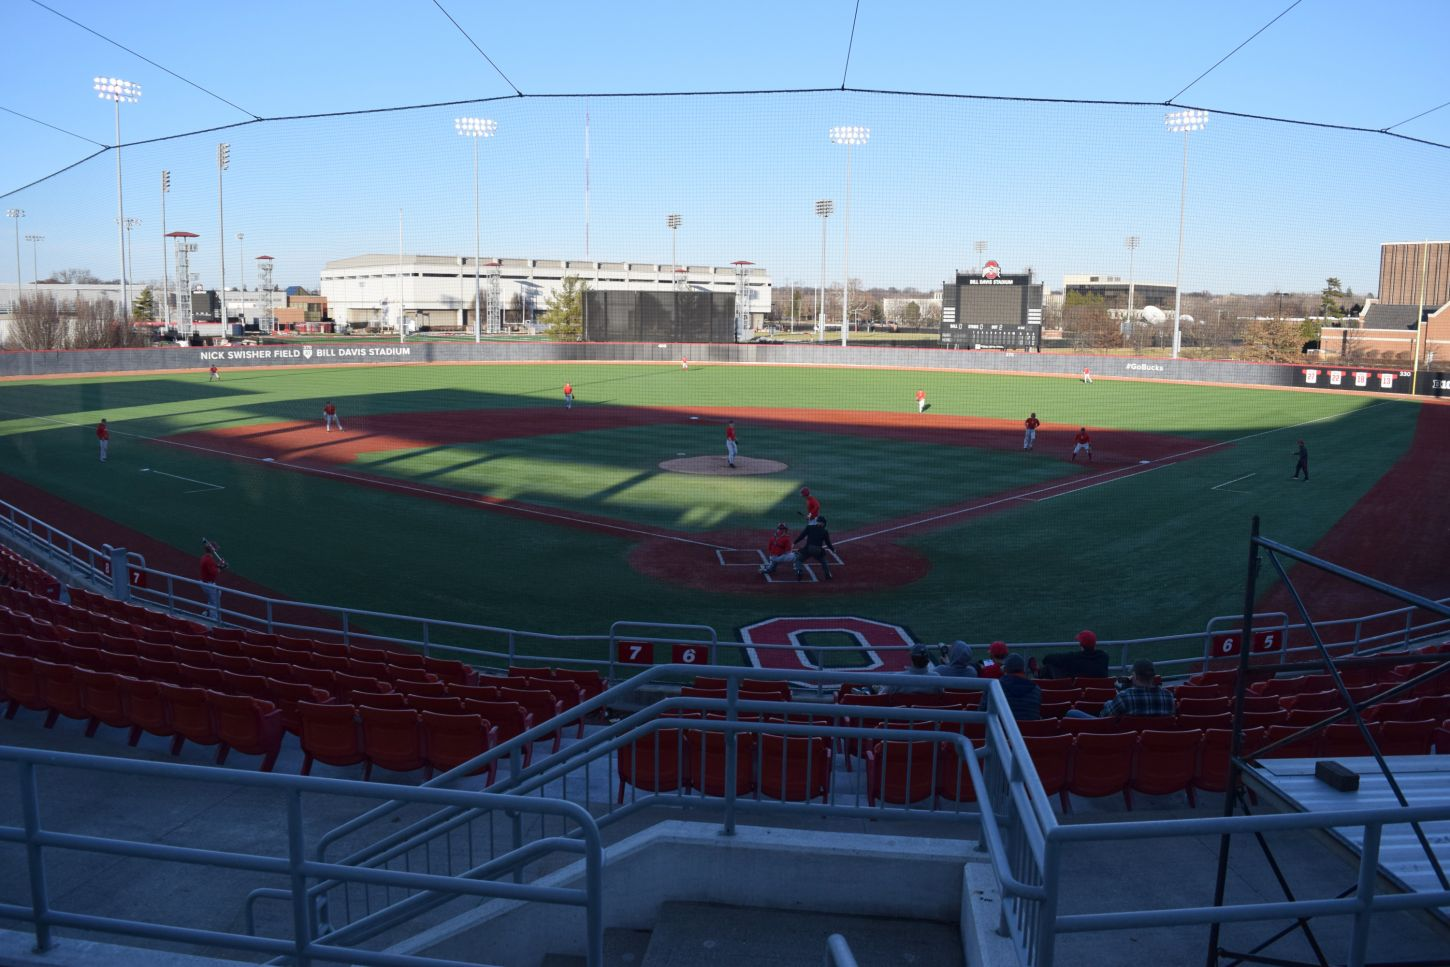 The Ohio State baseball team began practice for the 2018 season Friday, Jan. 26, at Bill Davis Stadium.